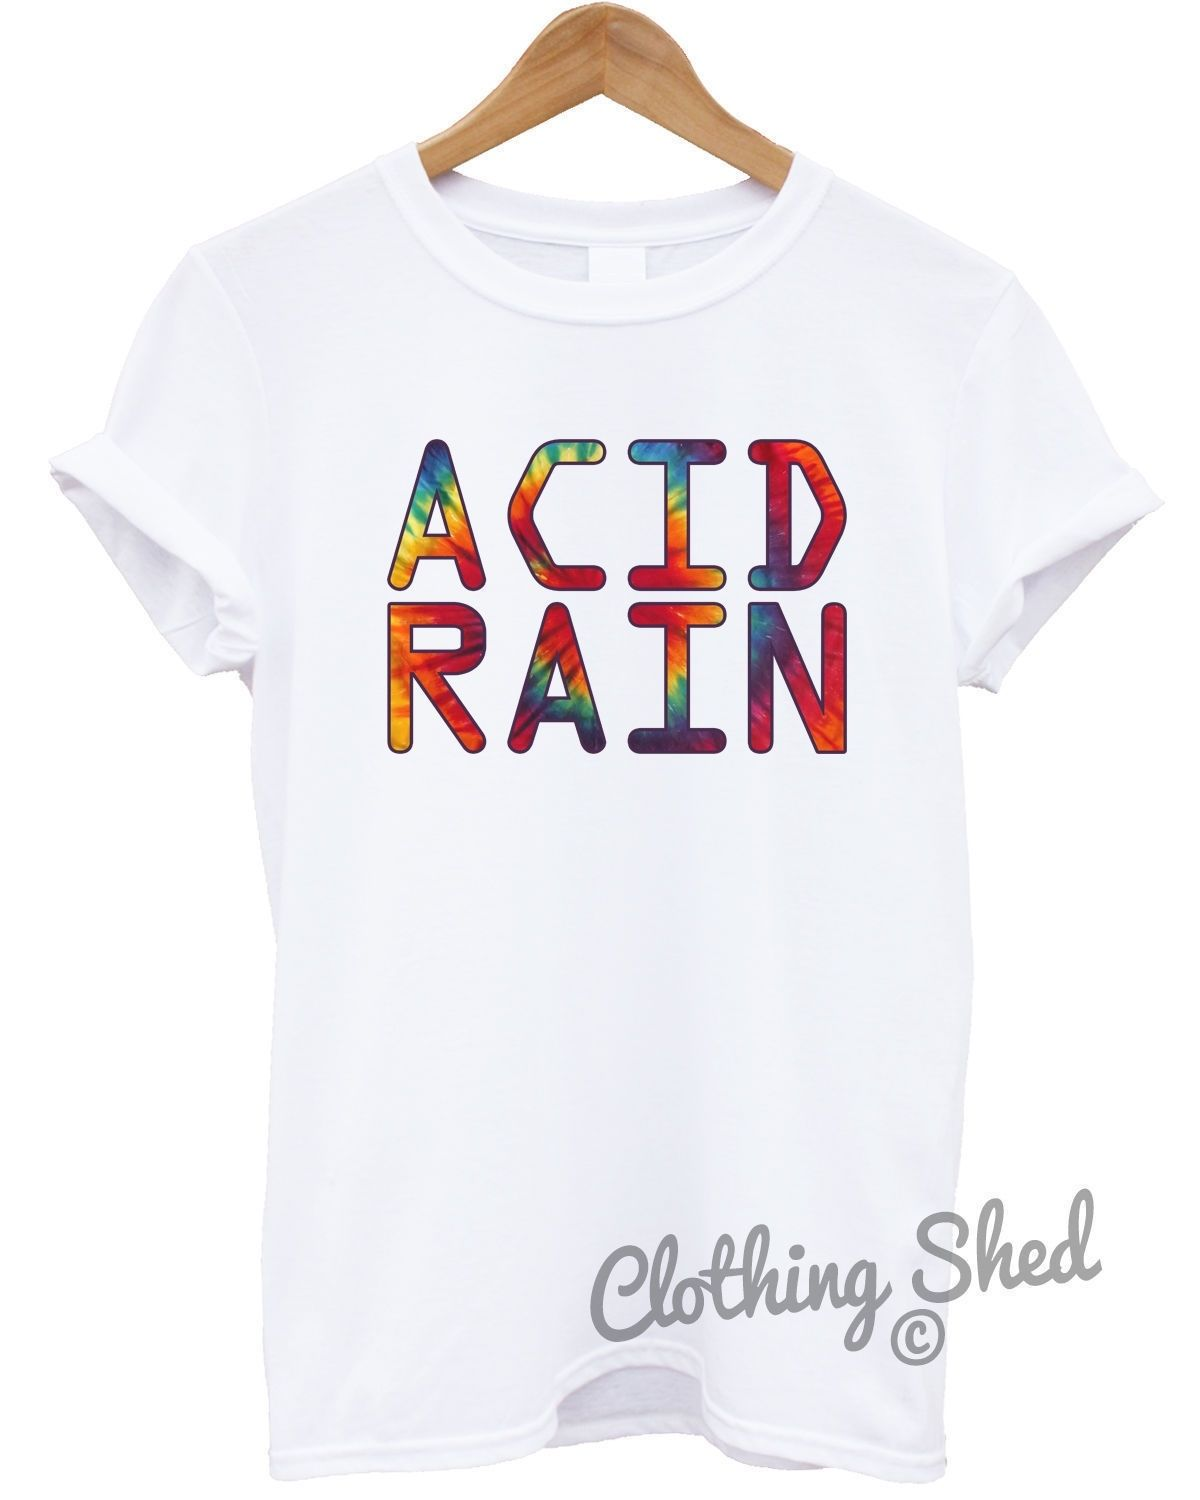 Acid Rain Hipster Mens Tshirt Womens Funny Party 80s Hippie Tie Dye Top FestivalCool Casual pride t shirt men Unisex New Fashion